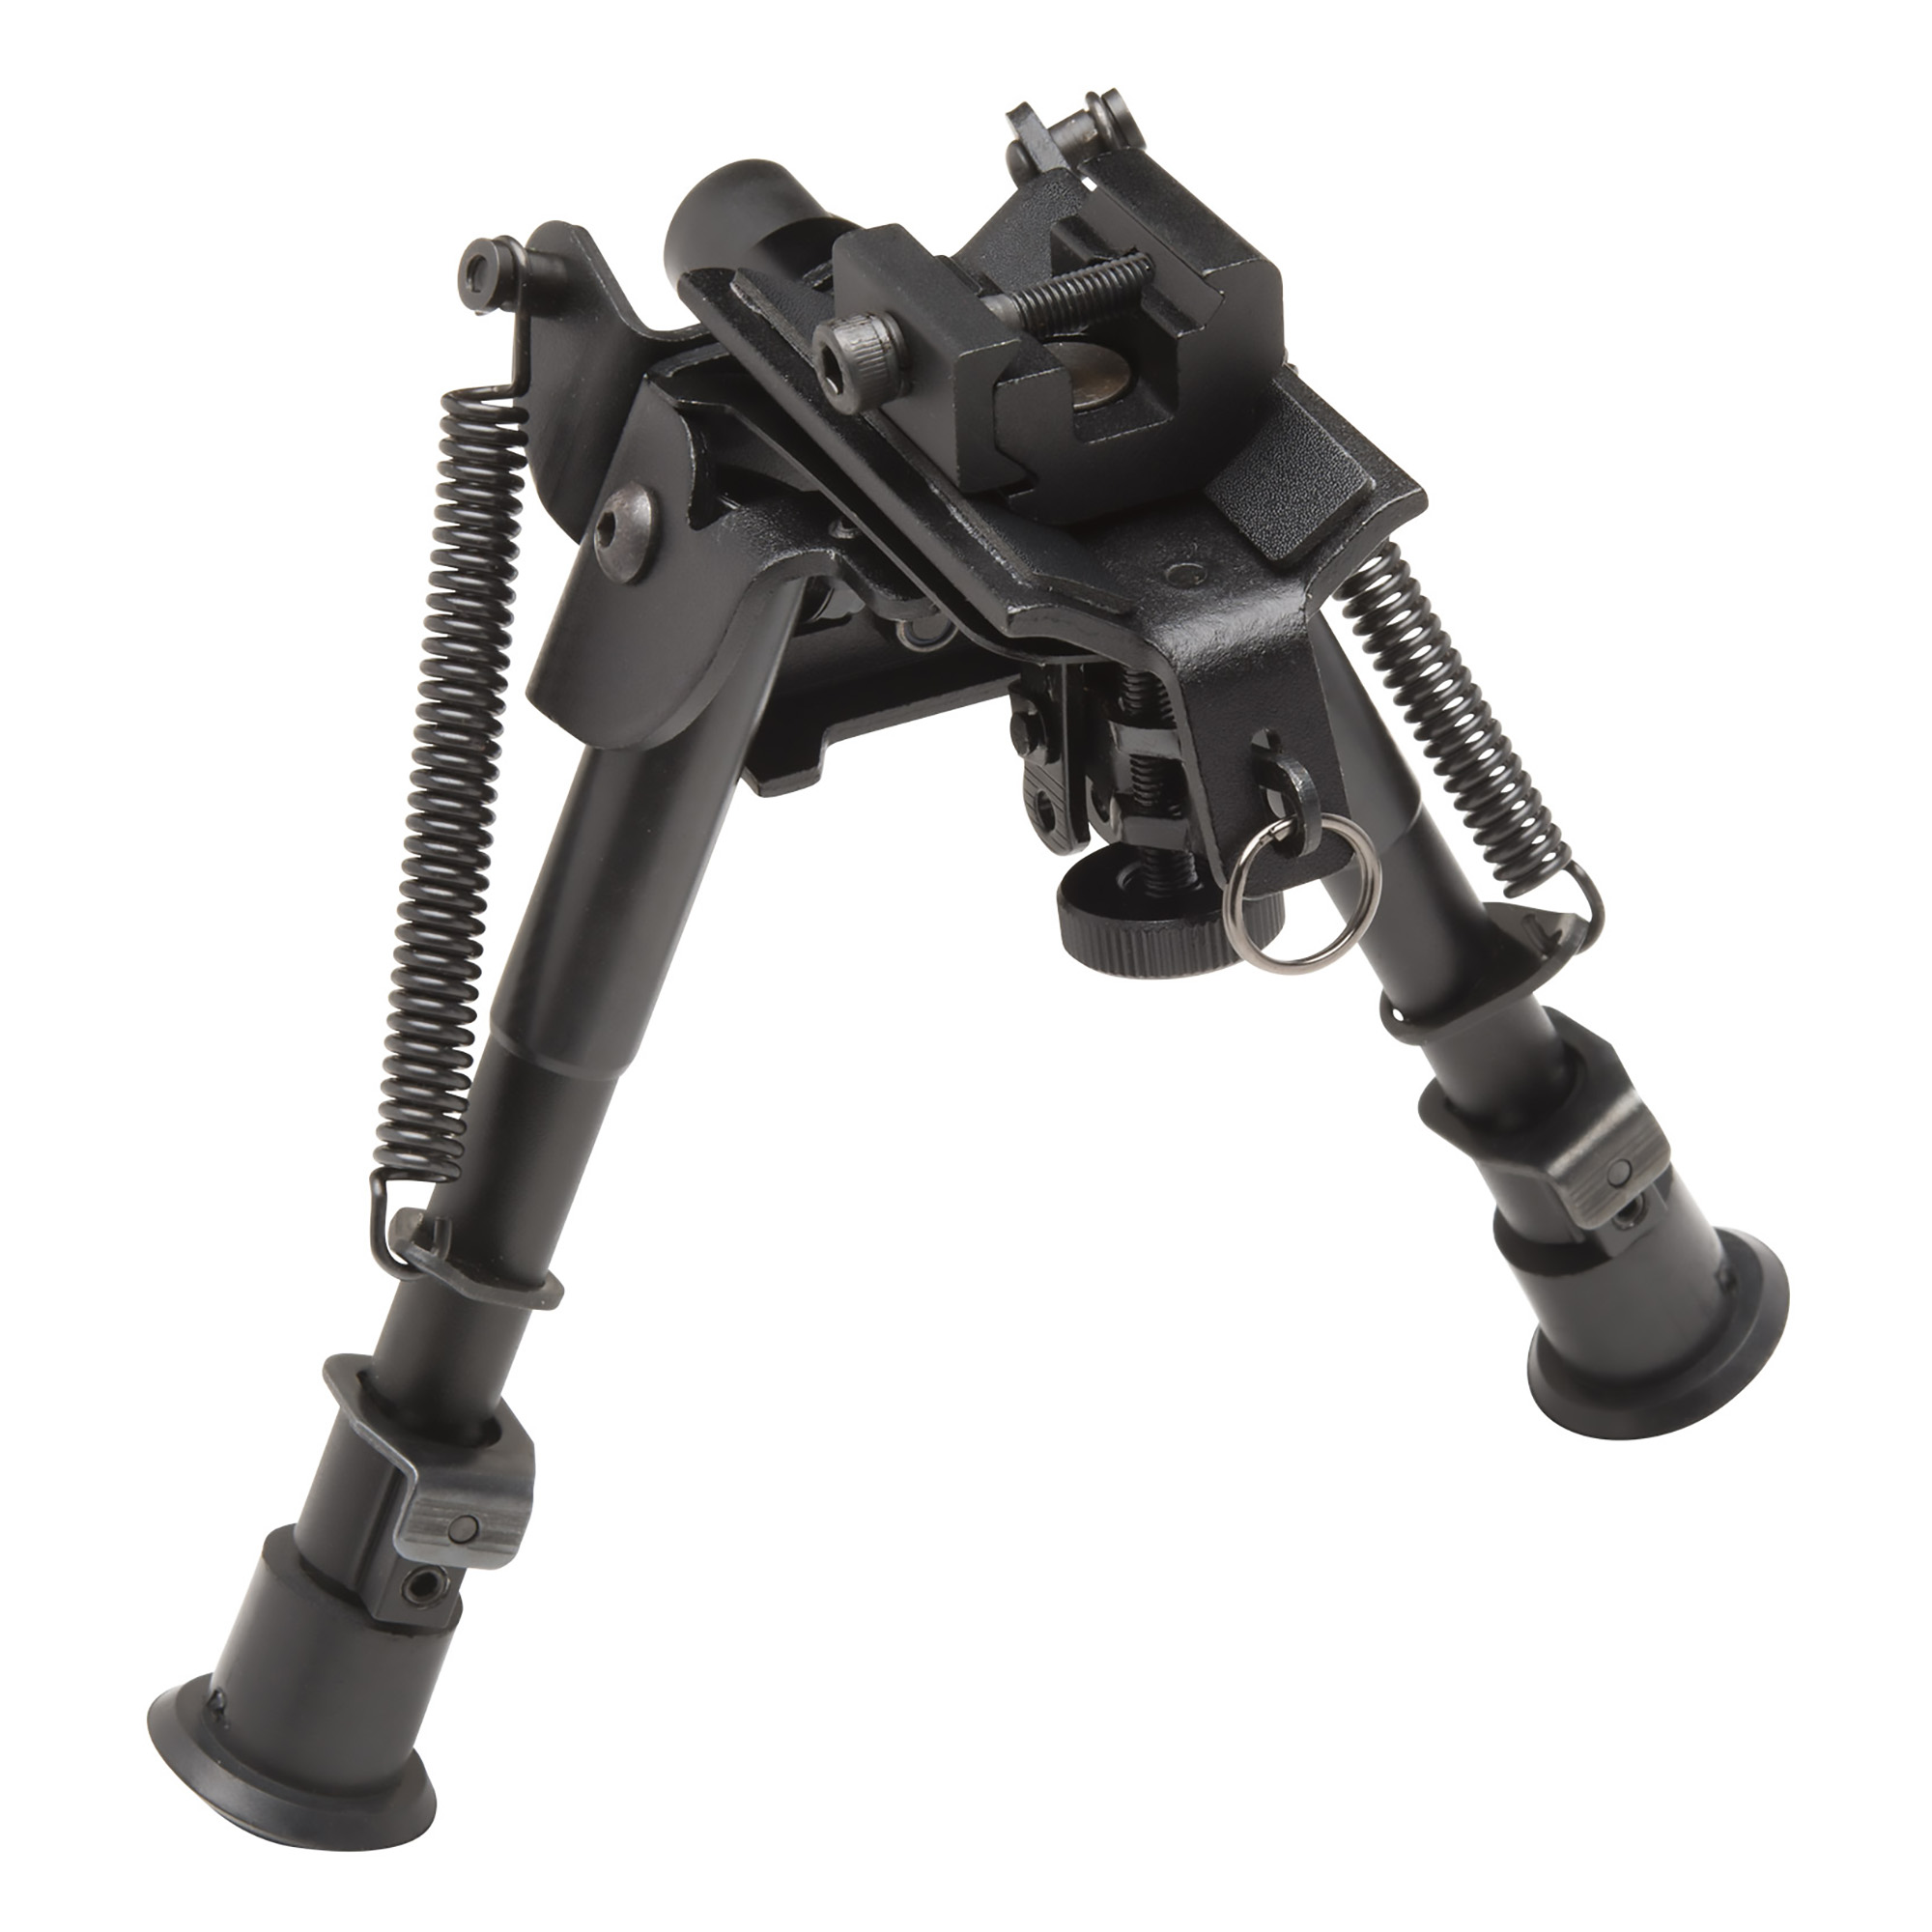 """This TAC POD adjustable bipod mounts to a sling swivel stud or a picatinny rail. It is lightweight and compact with quick deployment. It has a spring-assisted design and its pivoting base offers precision leveling on uneven surfaces. It includes a sling stud adapter that can be used without bipod for additional sling mounting options. Adjusts 6""""-9""""."""